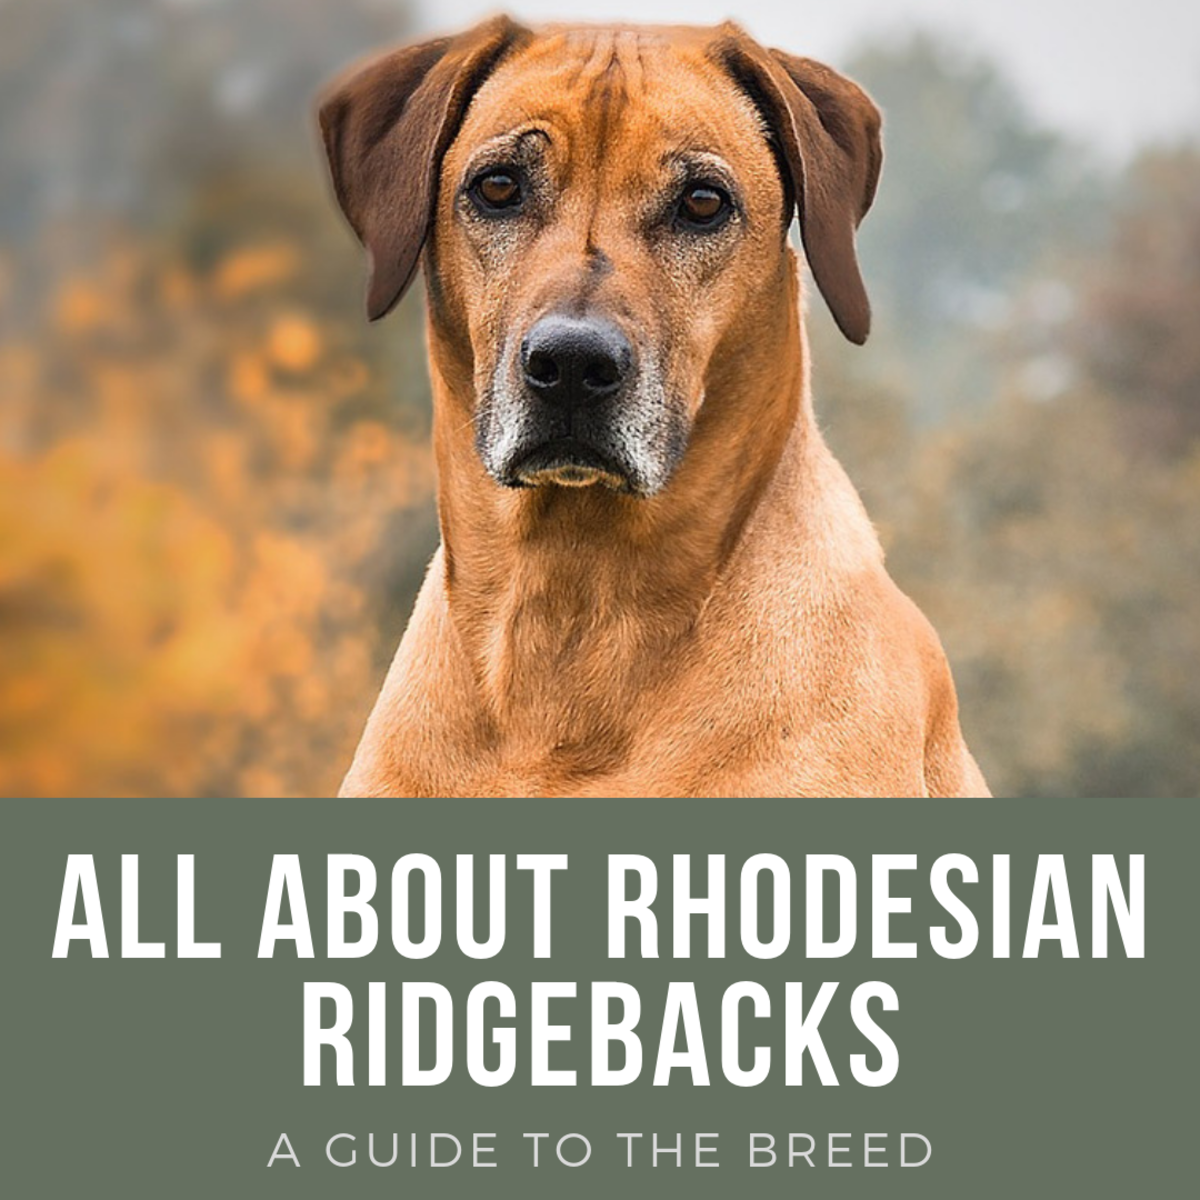 Rhodesian Ridgeback: Breed History, Temperament, and FAQs